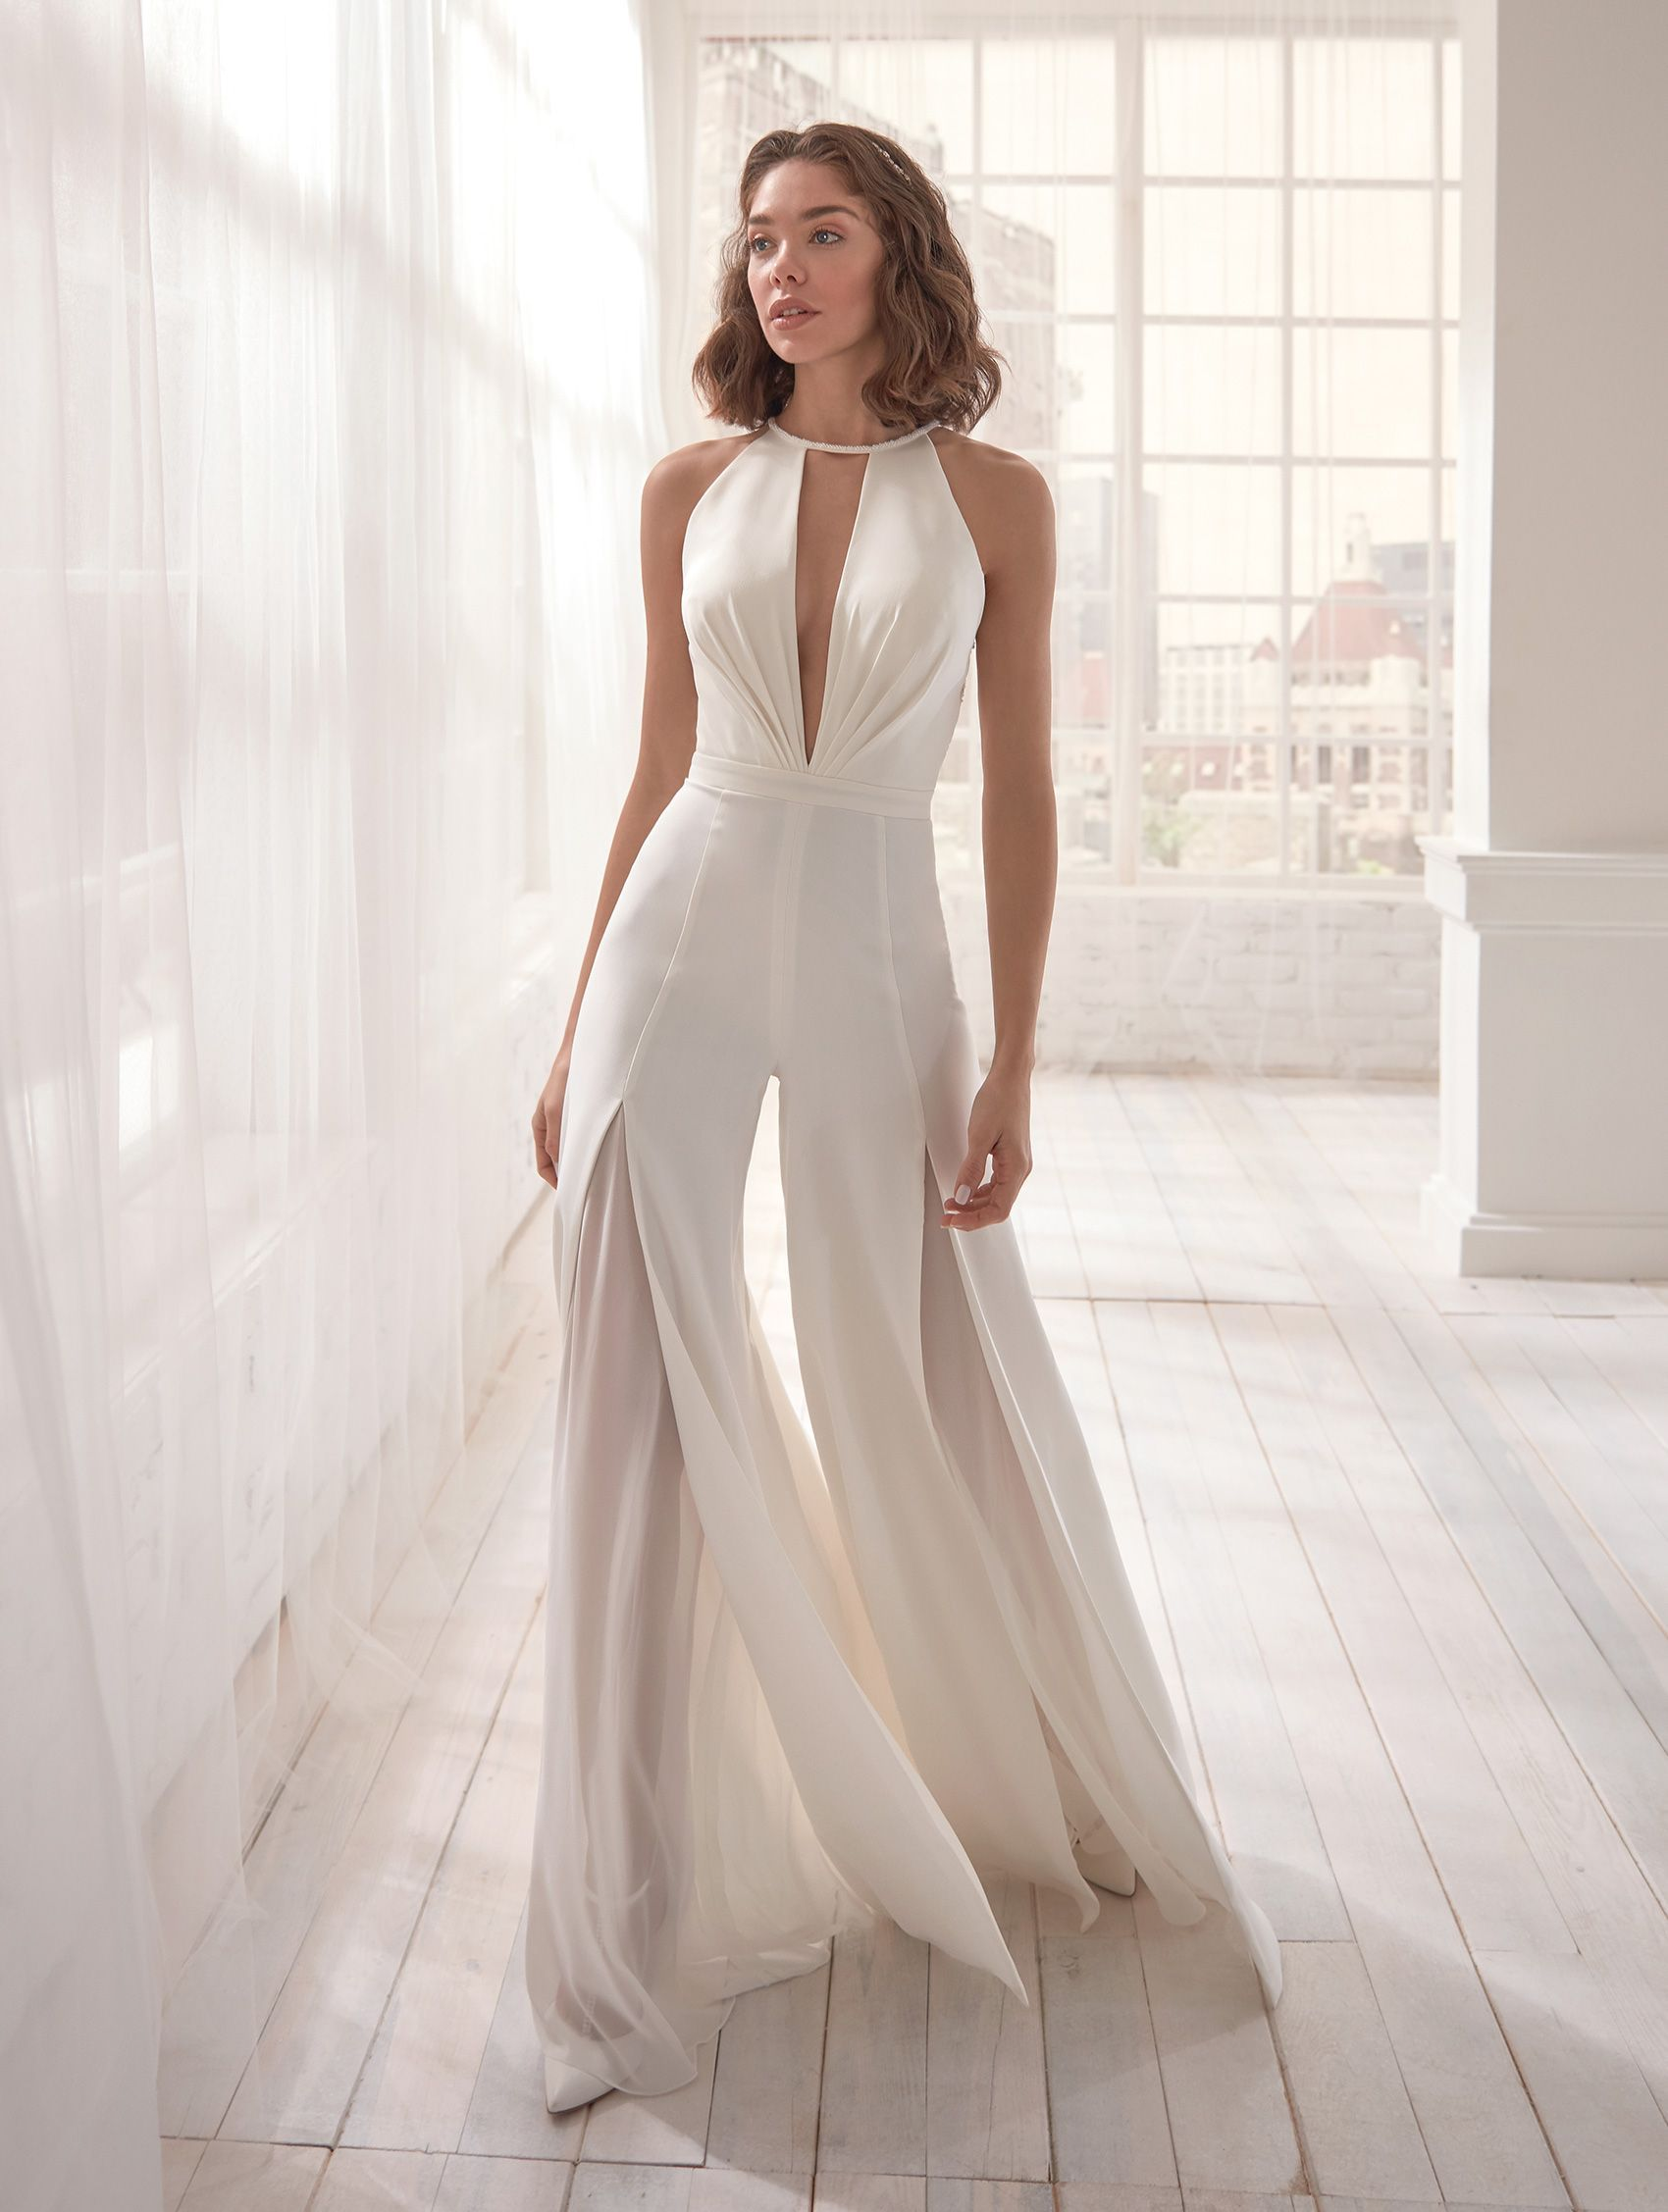 Modern Jumpsuit - Your glamorous dream dress by Nicole, #Dream